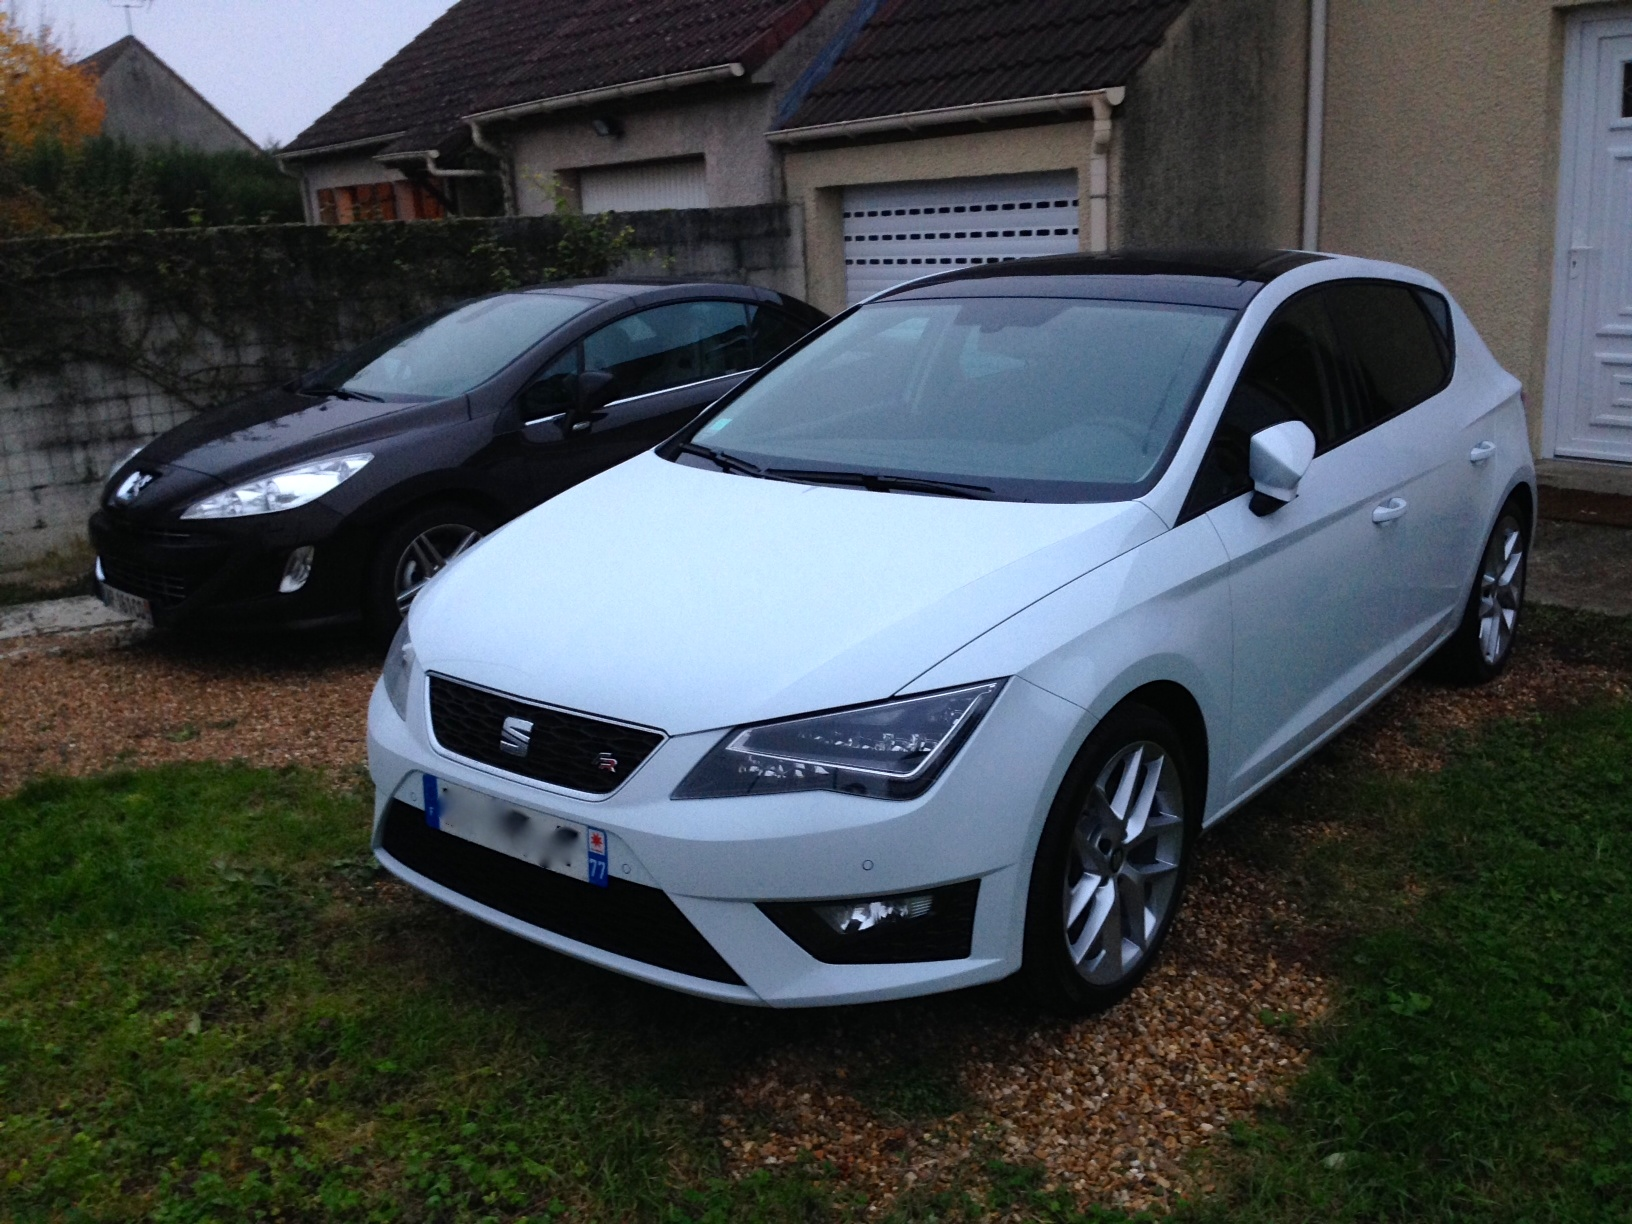 photo 3 seat leon foyse photos club club. Black Bedroom Furniture Sets. Home Design Ideas